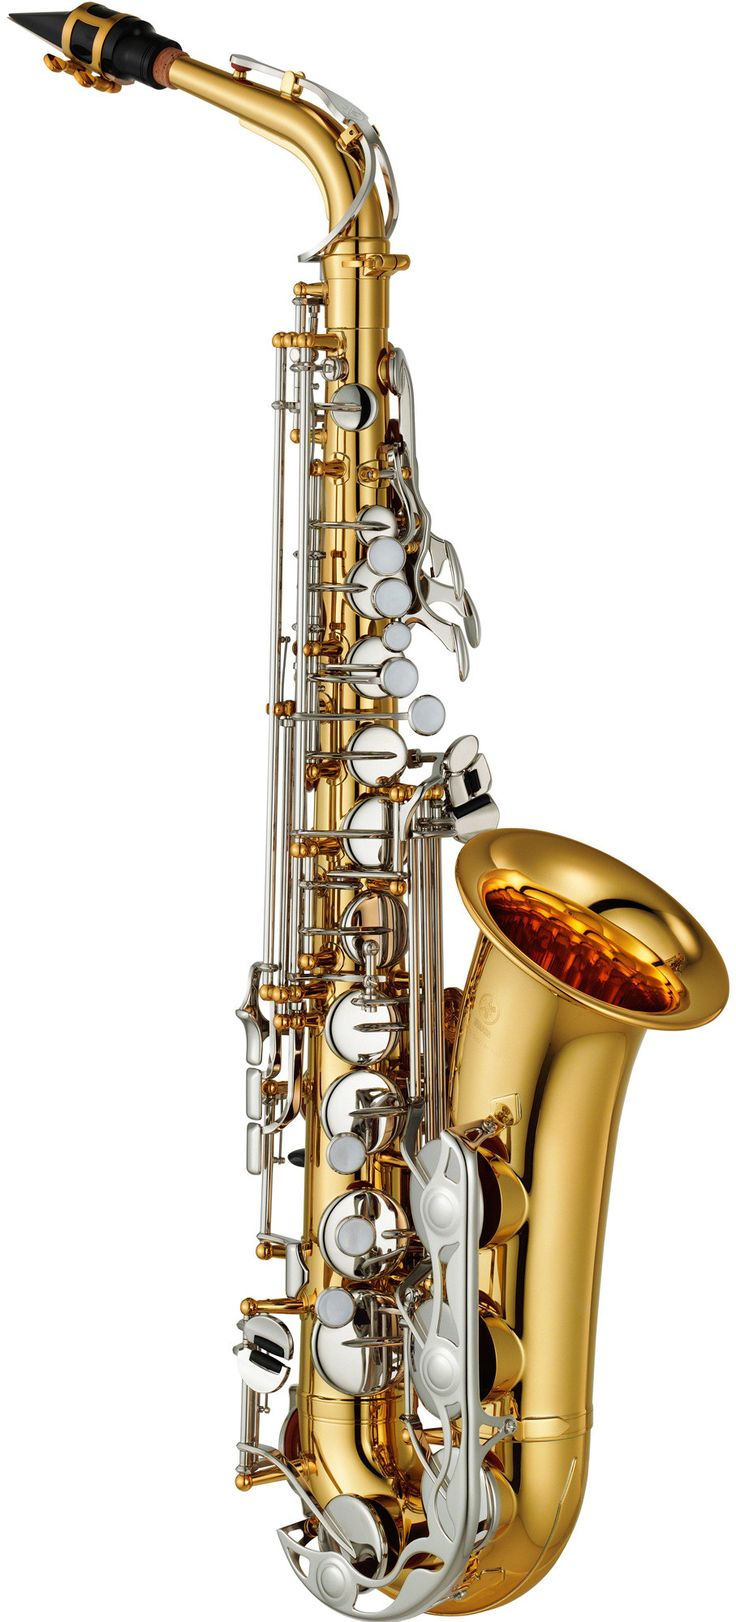 The YAS-26 combines state-of-the-art production expertise with design elements of Yamaha professional and custom saxophones. The result is an entry-level instrument that delivers the response, intonat